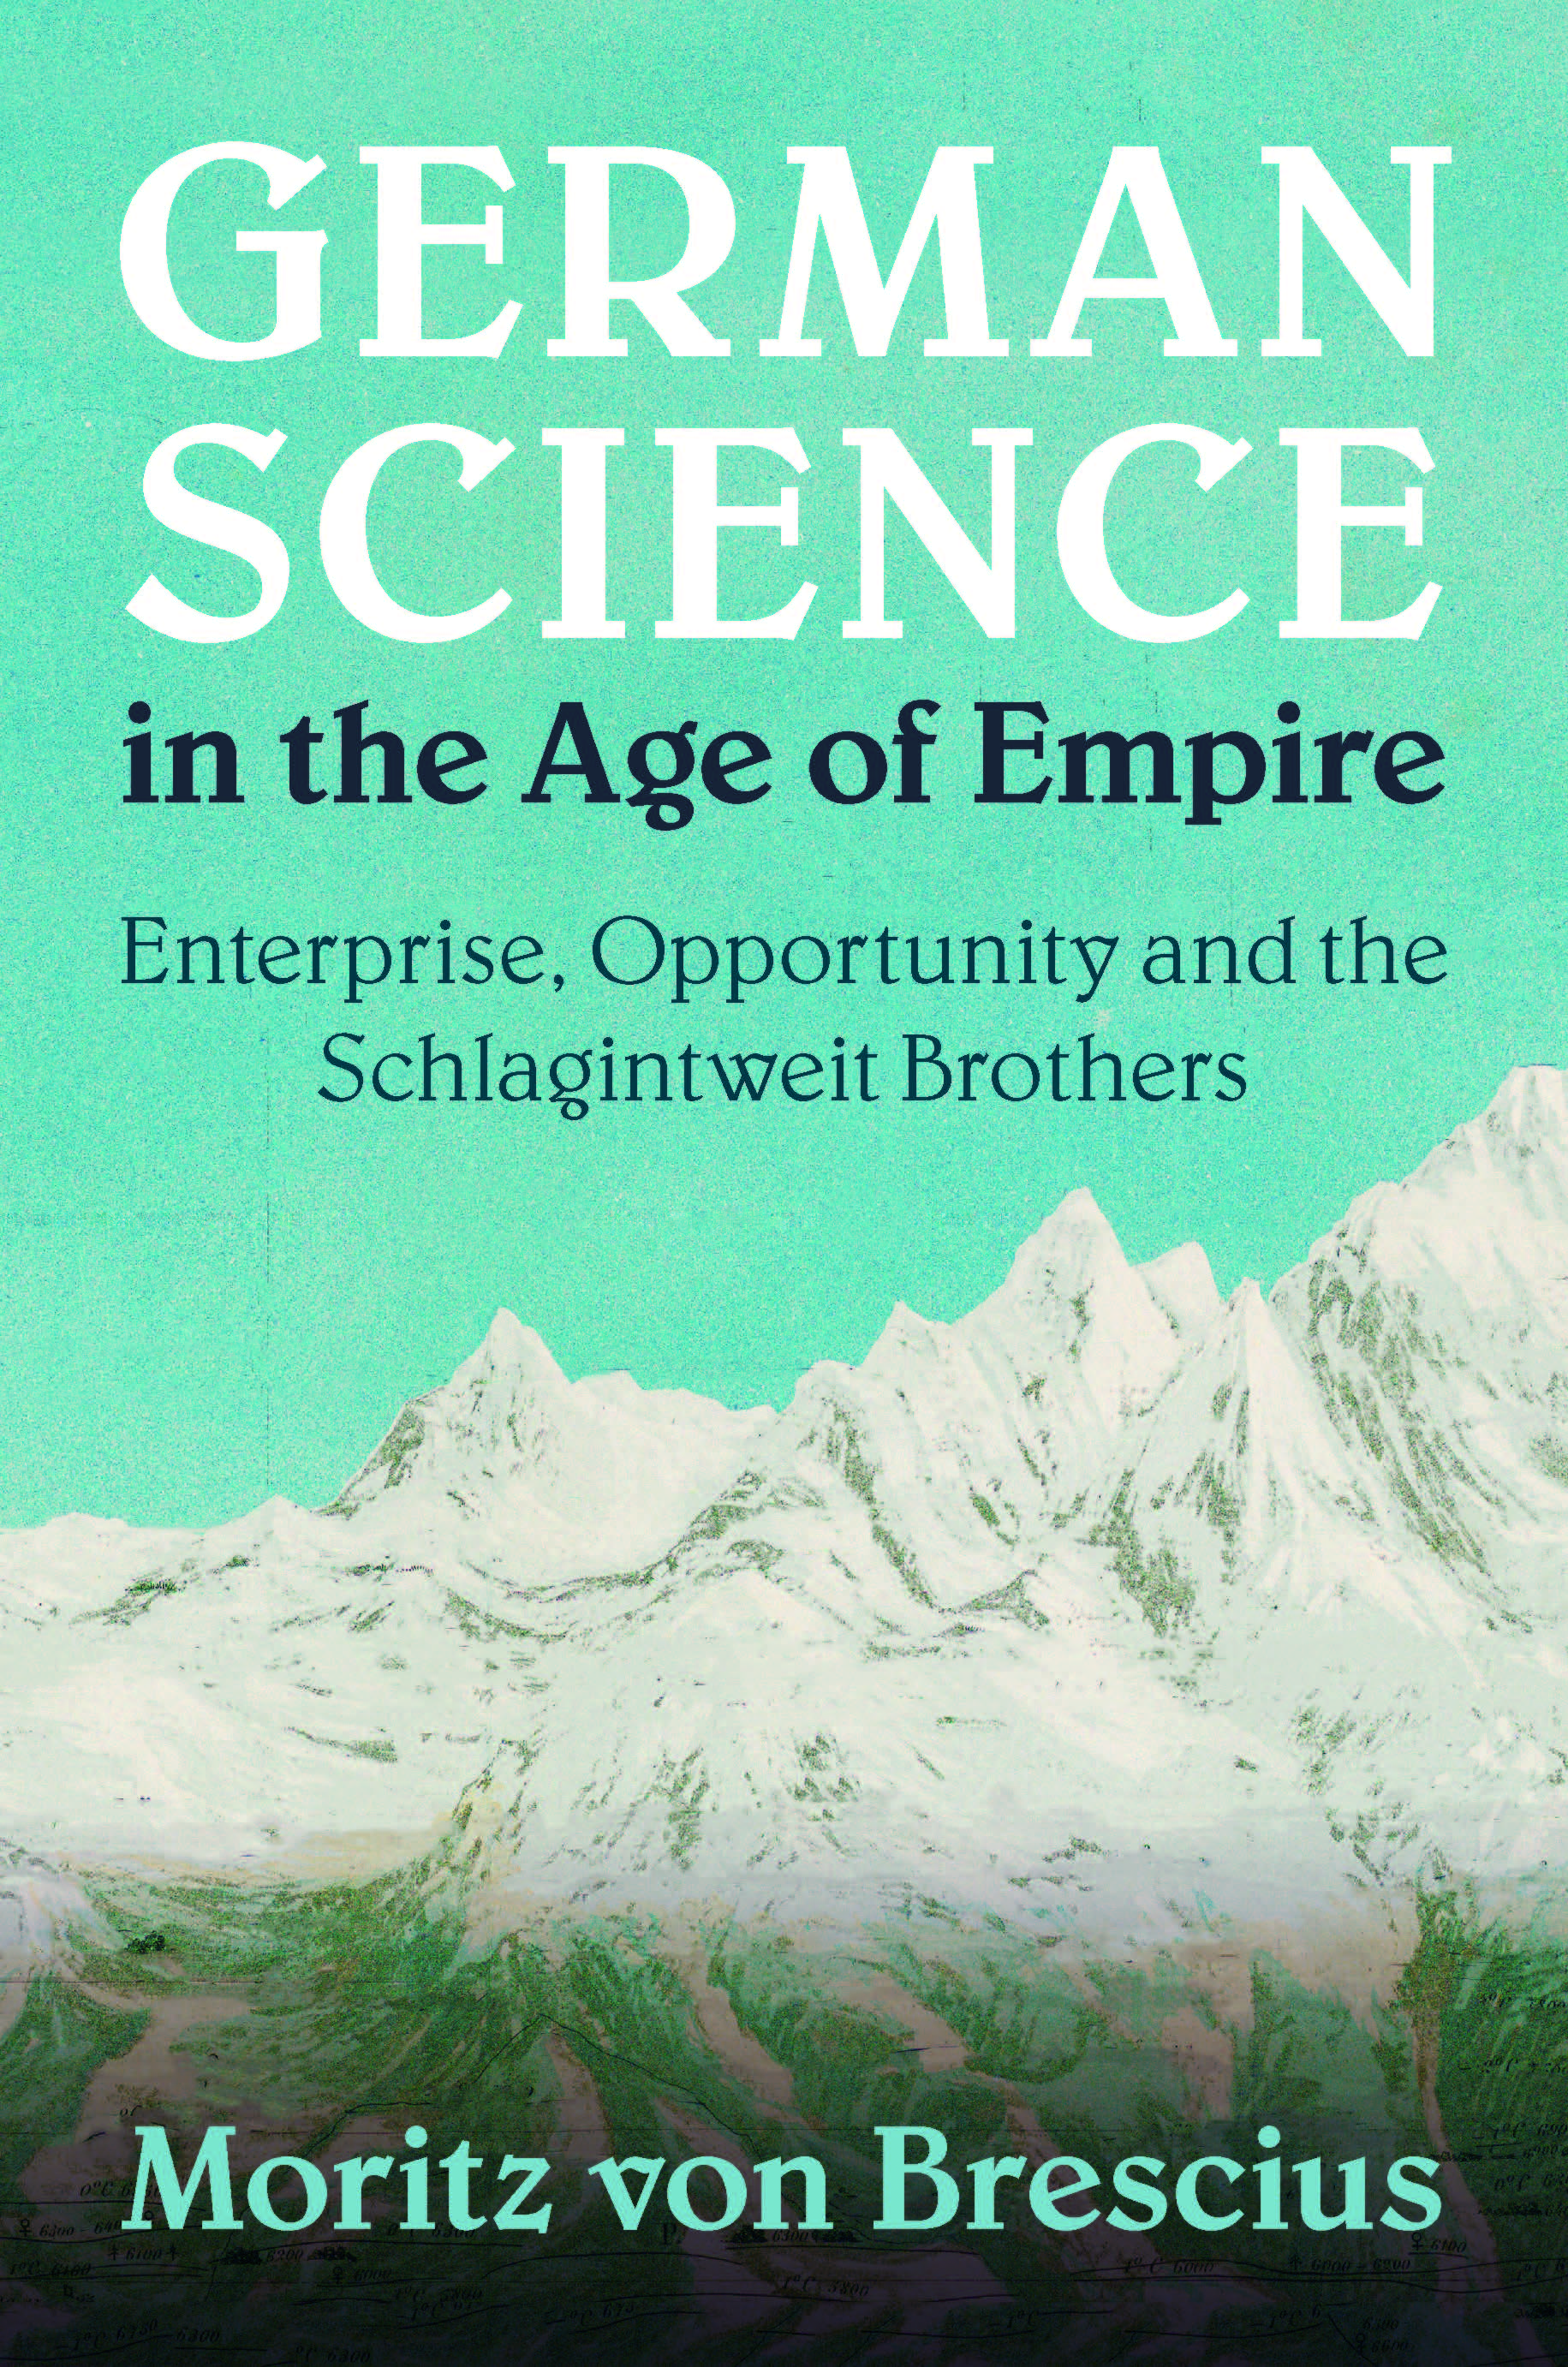 Buchcover «German Science in the Age of Empire: Enterprise, Opportunity and the Schlagintweit Brothers» von Moritz von Brescius, erschienen bei der Cambridge University Press.  © Cambridge University Press